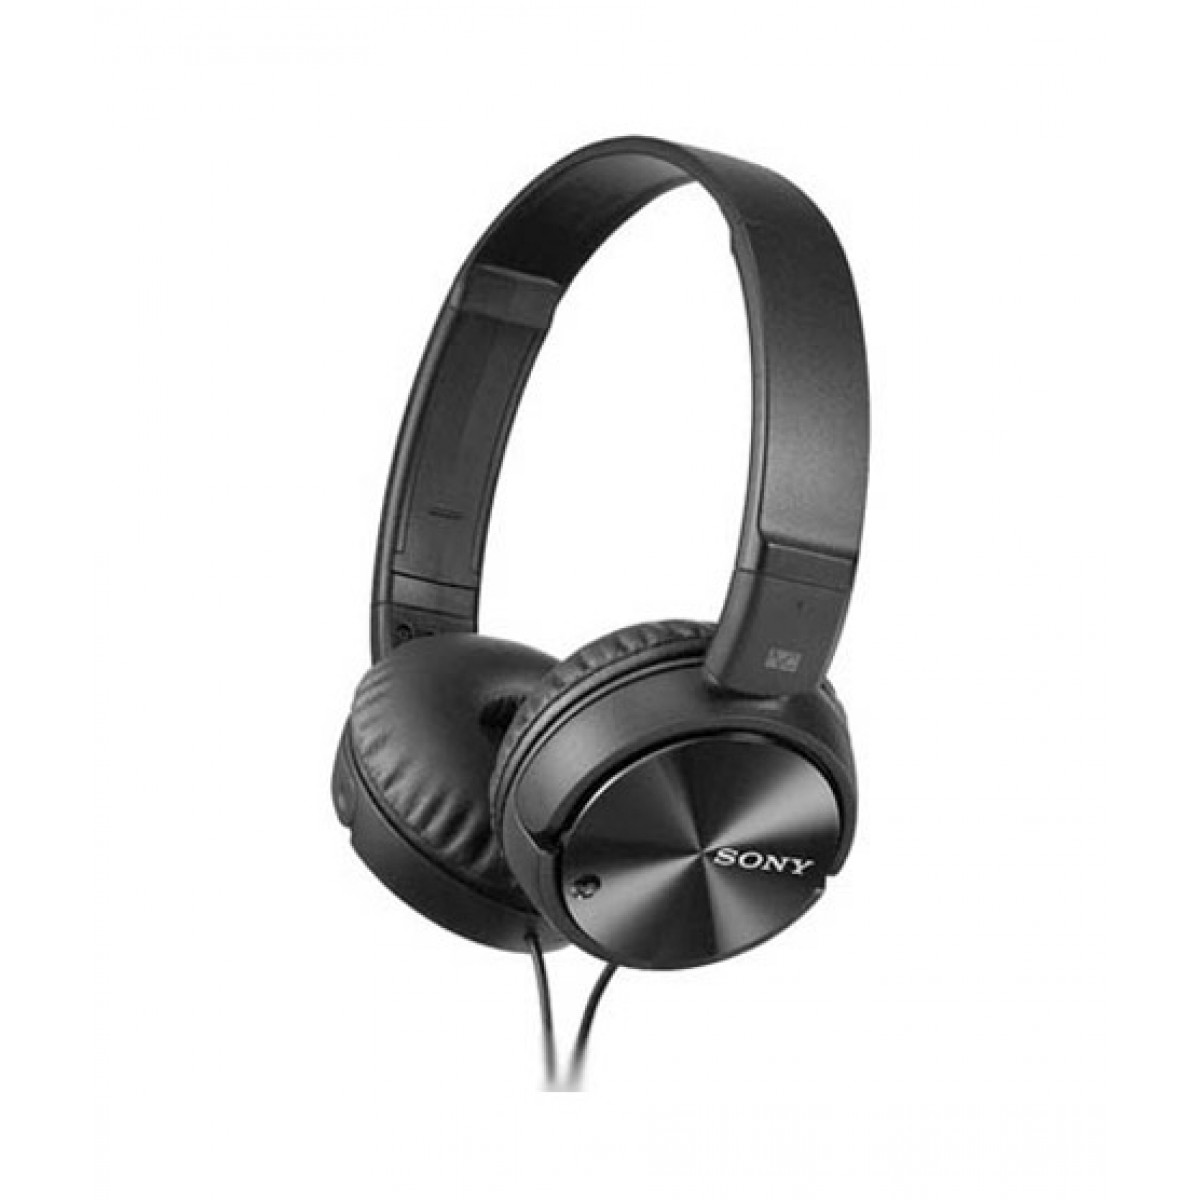 ffe9480fd33 Sony Stereo Headphone Price in Pakistan | Buy Sony Noise Cancelling  Headphone (MDR-ZX110NC) | iShopping.pk